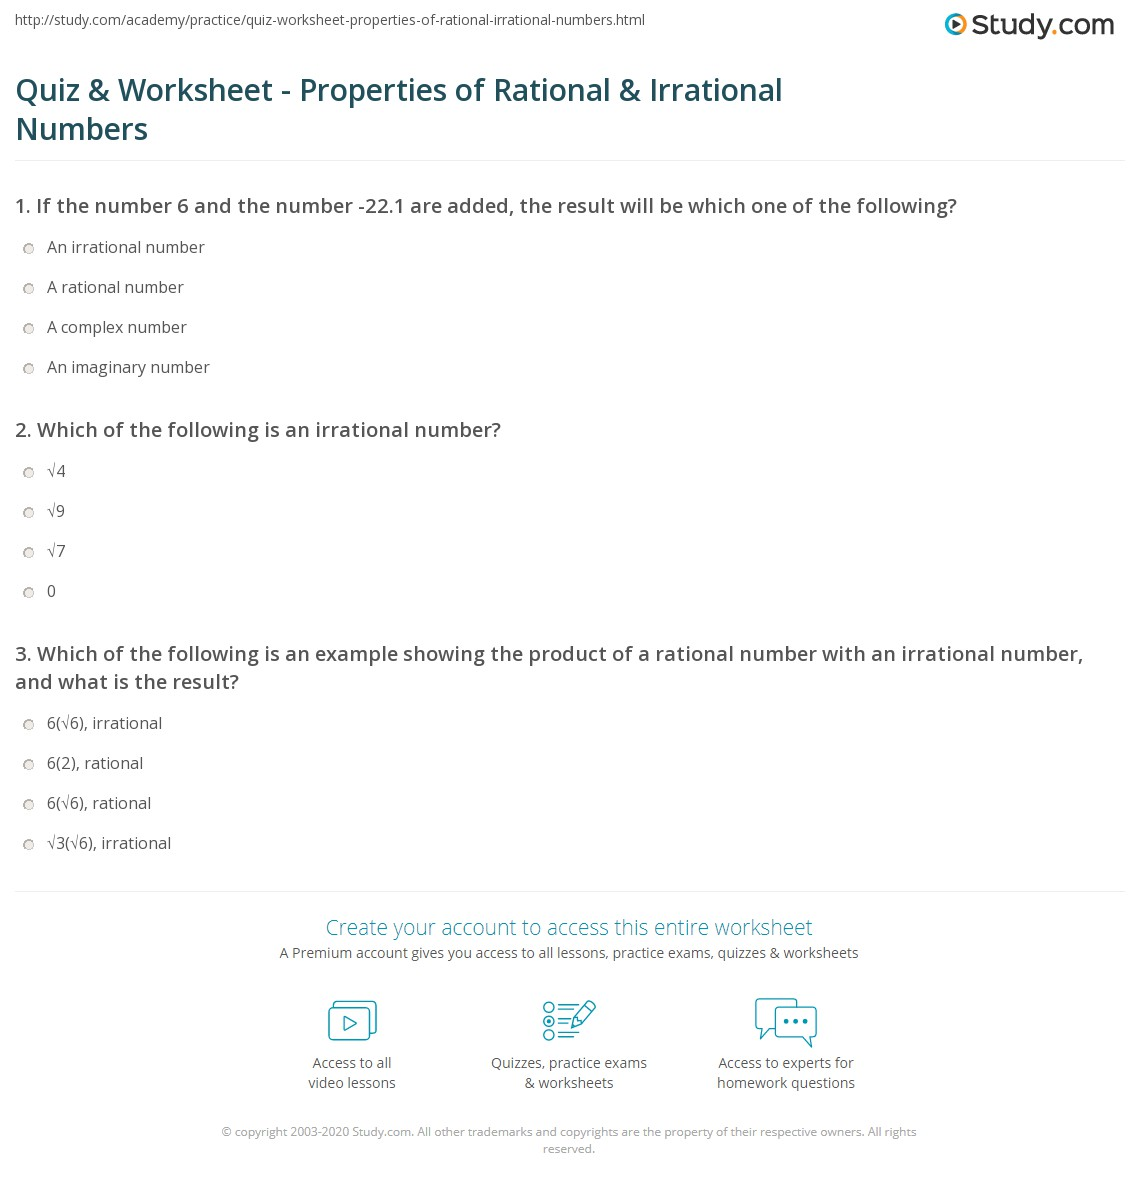 Worksheet Rational And Irrational Worksheets quiz worksheet properties of rational irrational numbers print worksheet